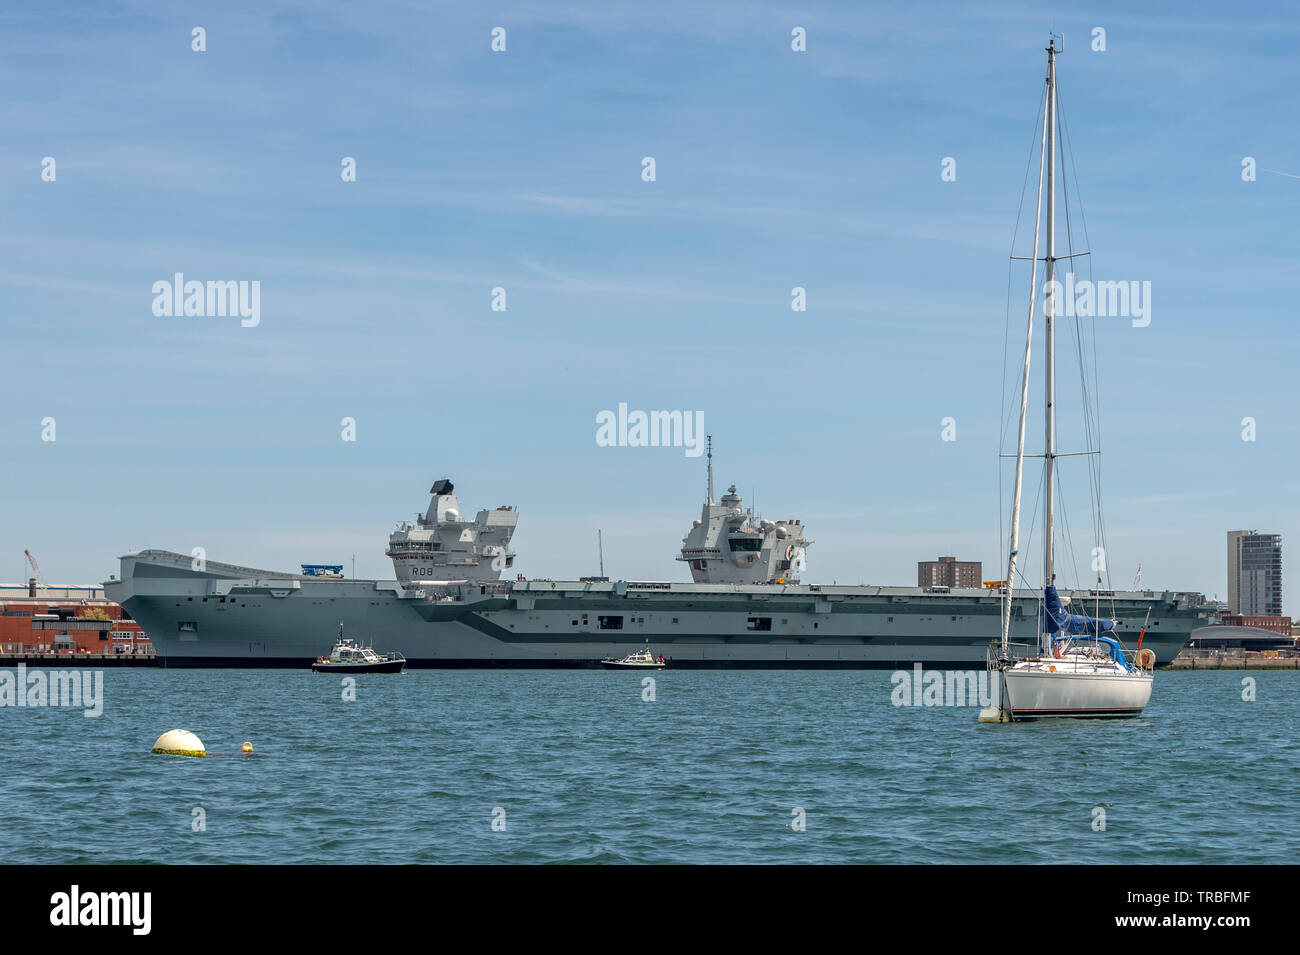 HMS Queen Elizabeth docked in Portsmouth Harbour with police patrol boats - Stock Image